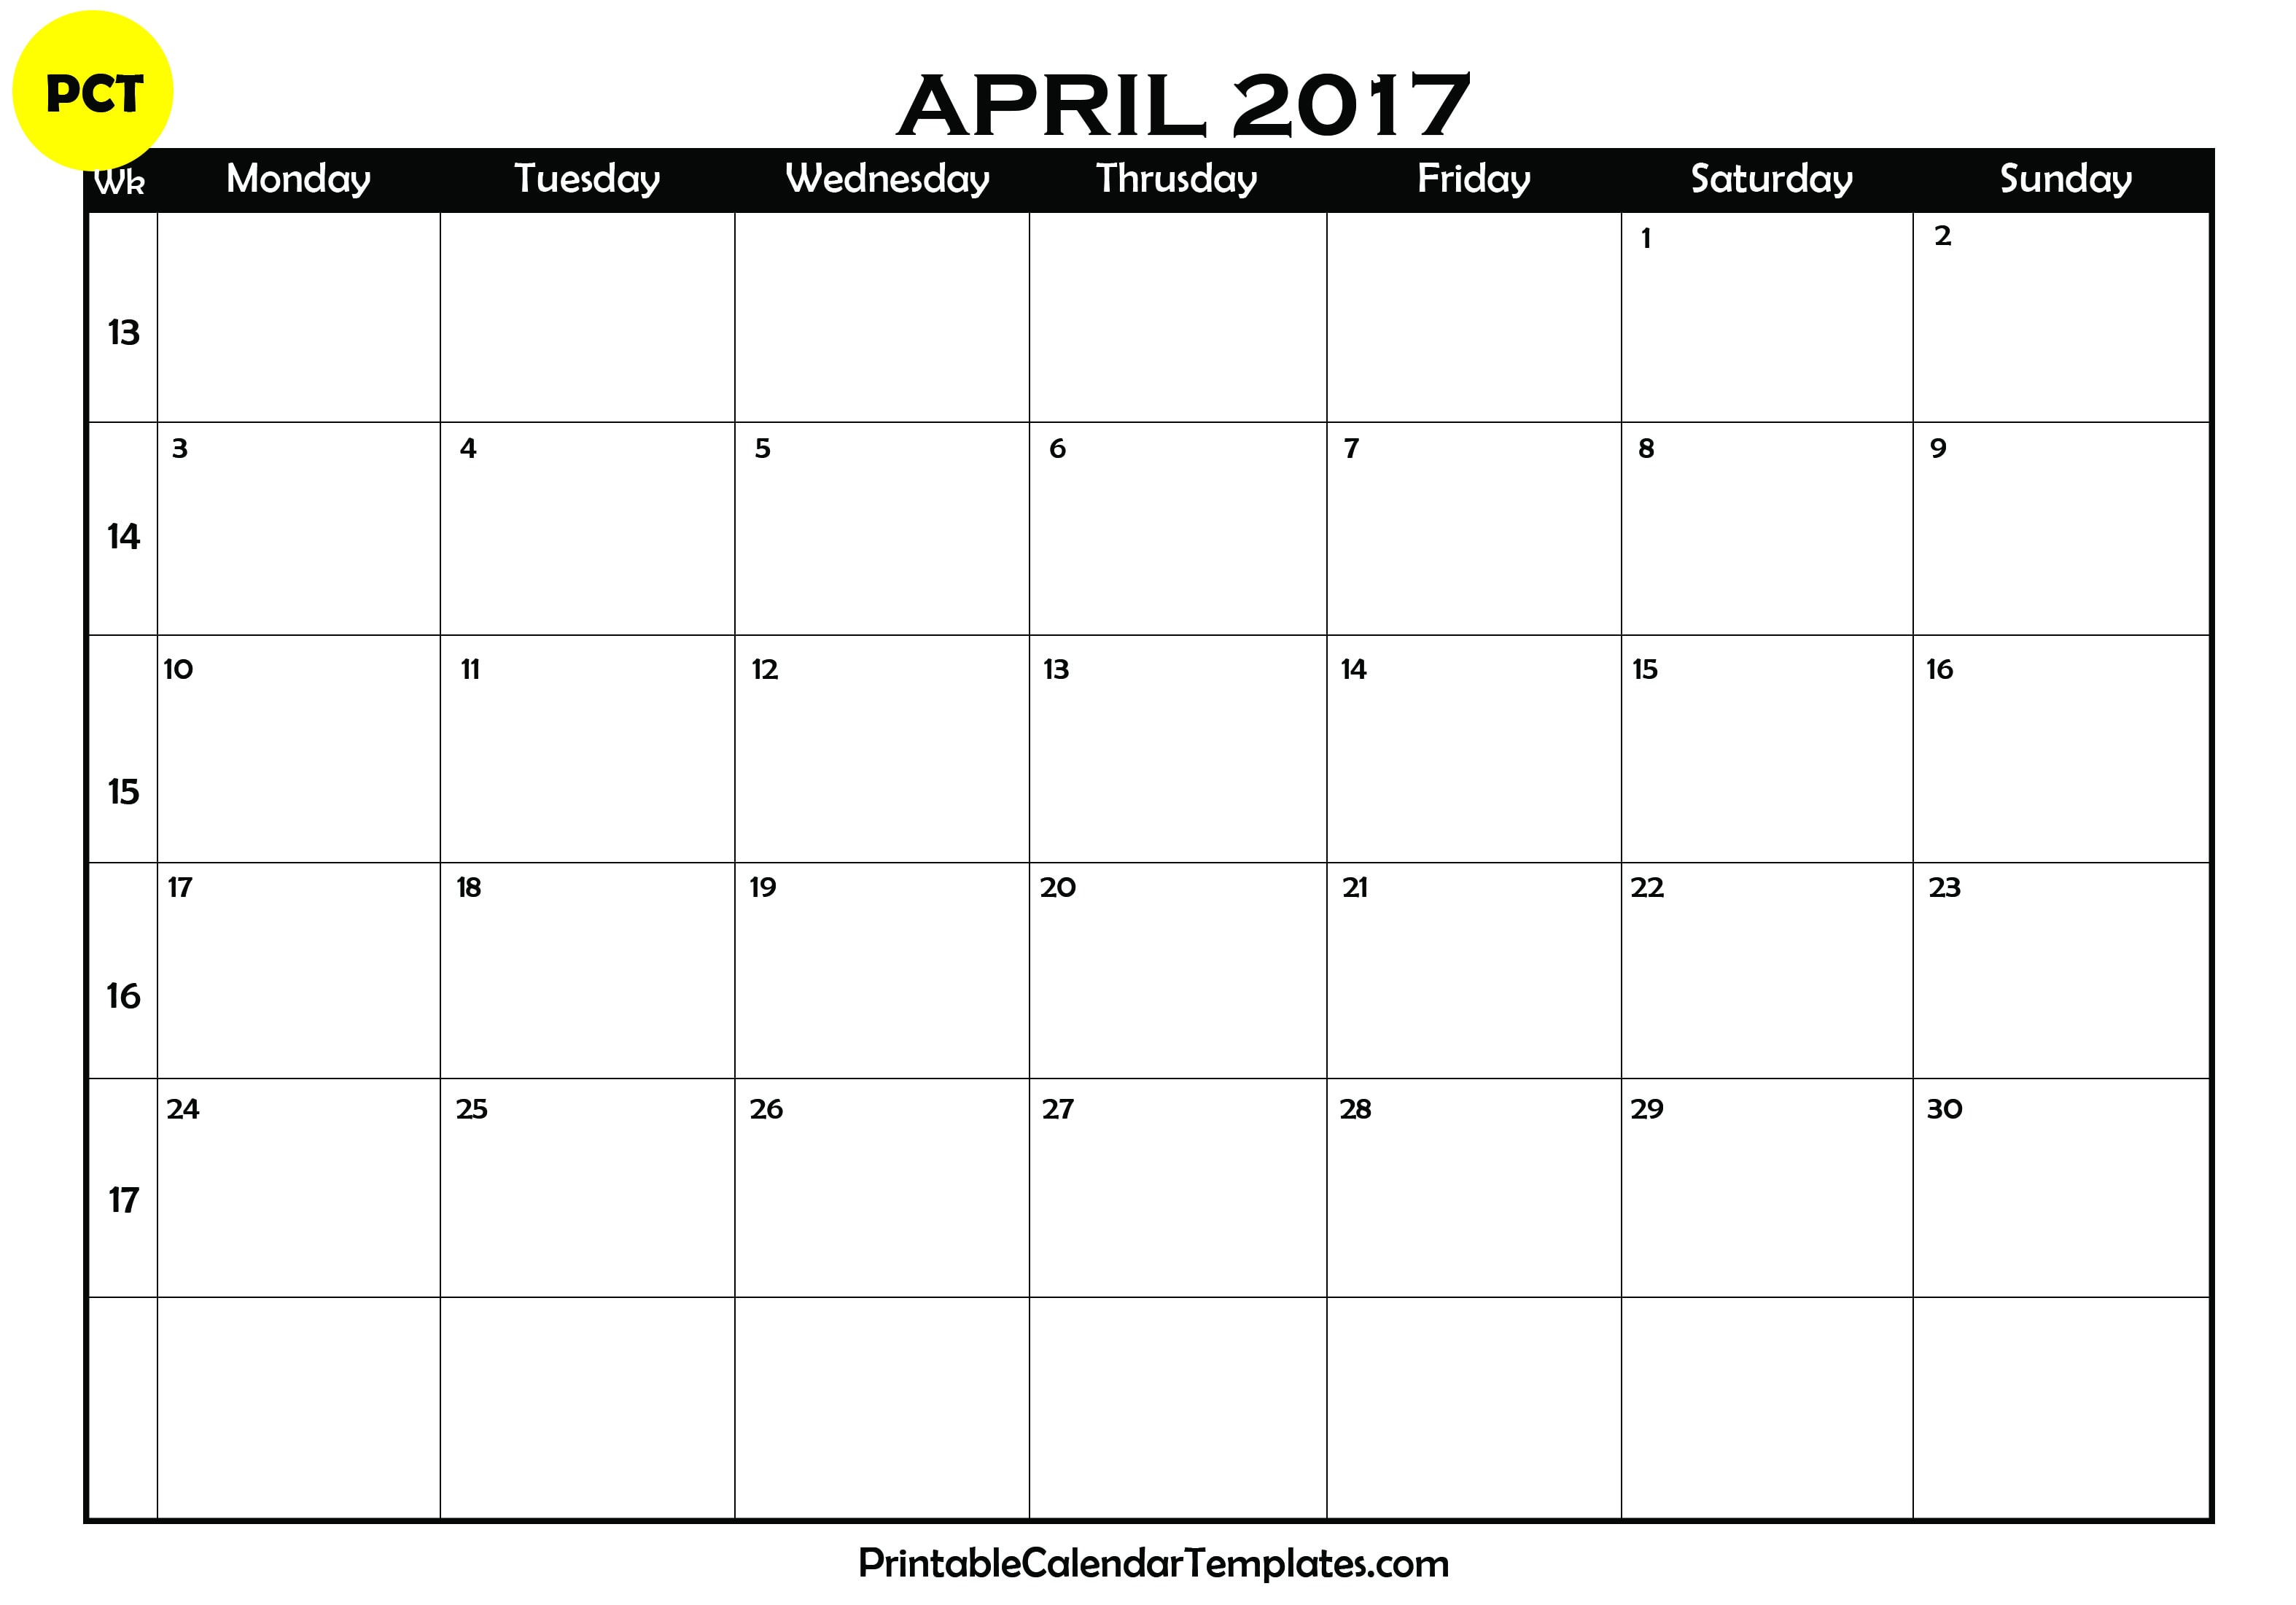 April Calendar Blank : April calendar printable templates